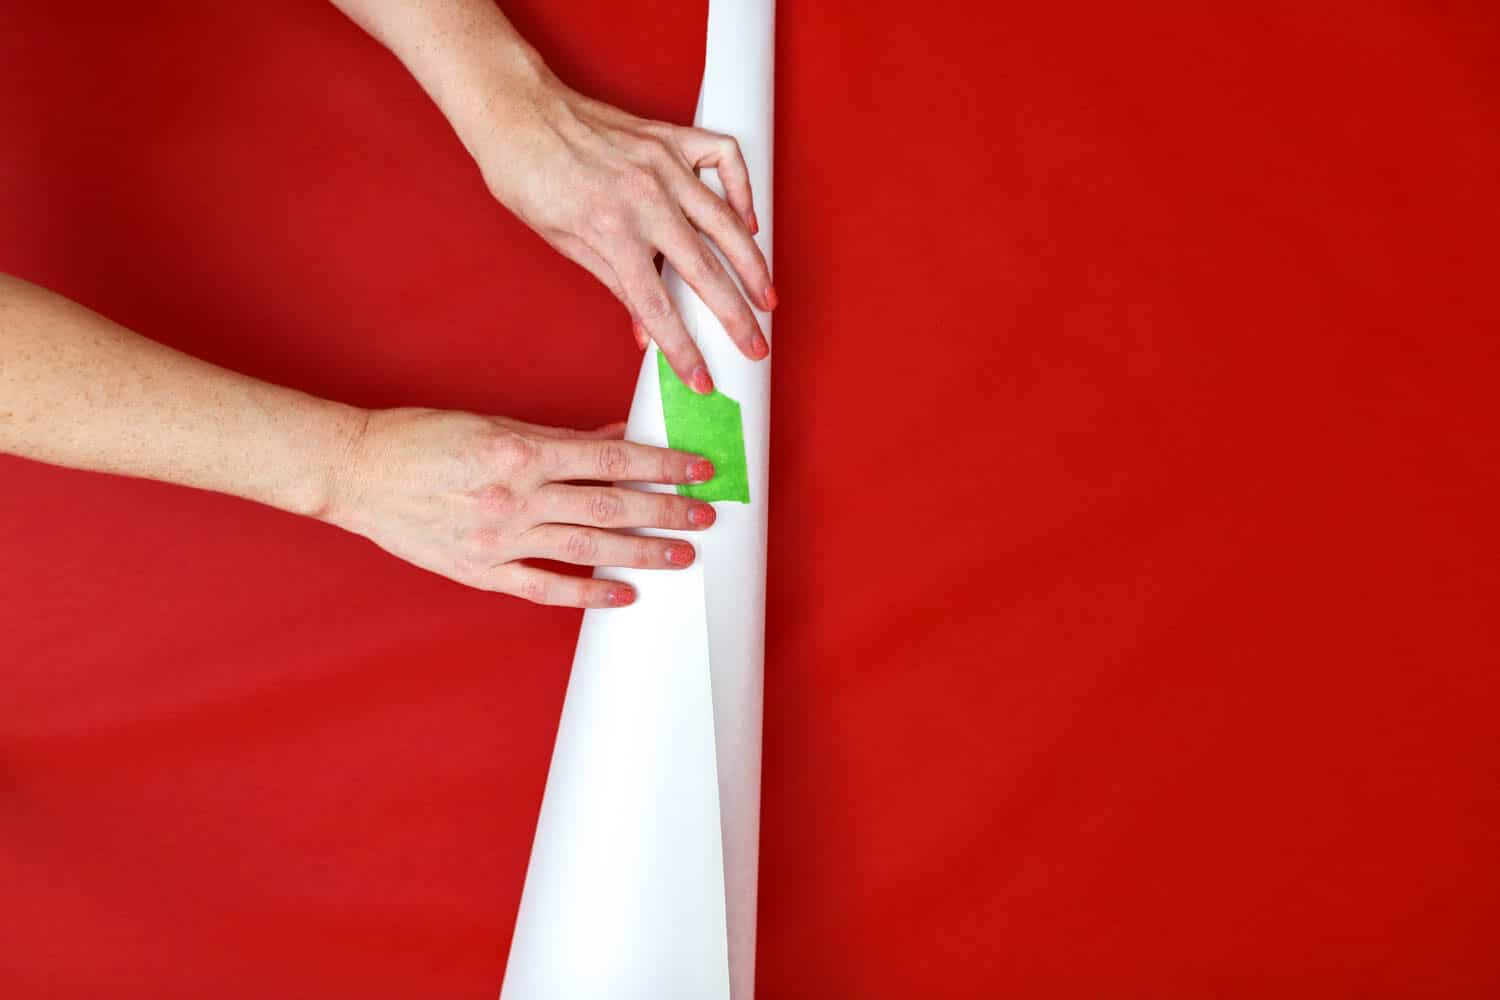 taping posterboard to create cone christmas trees